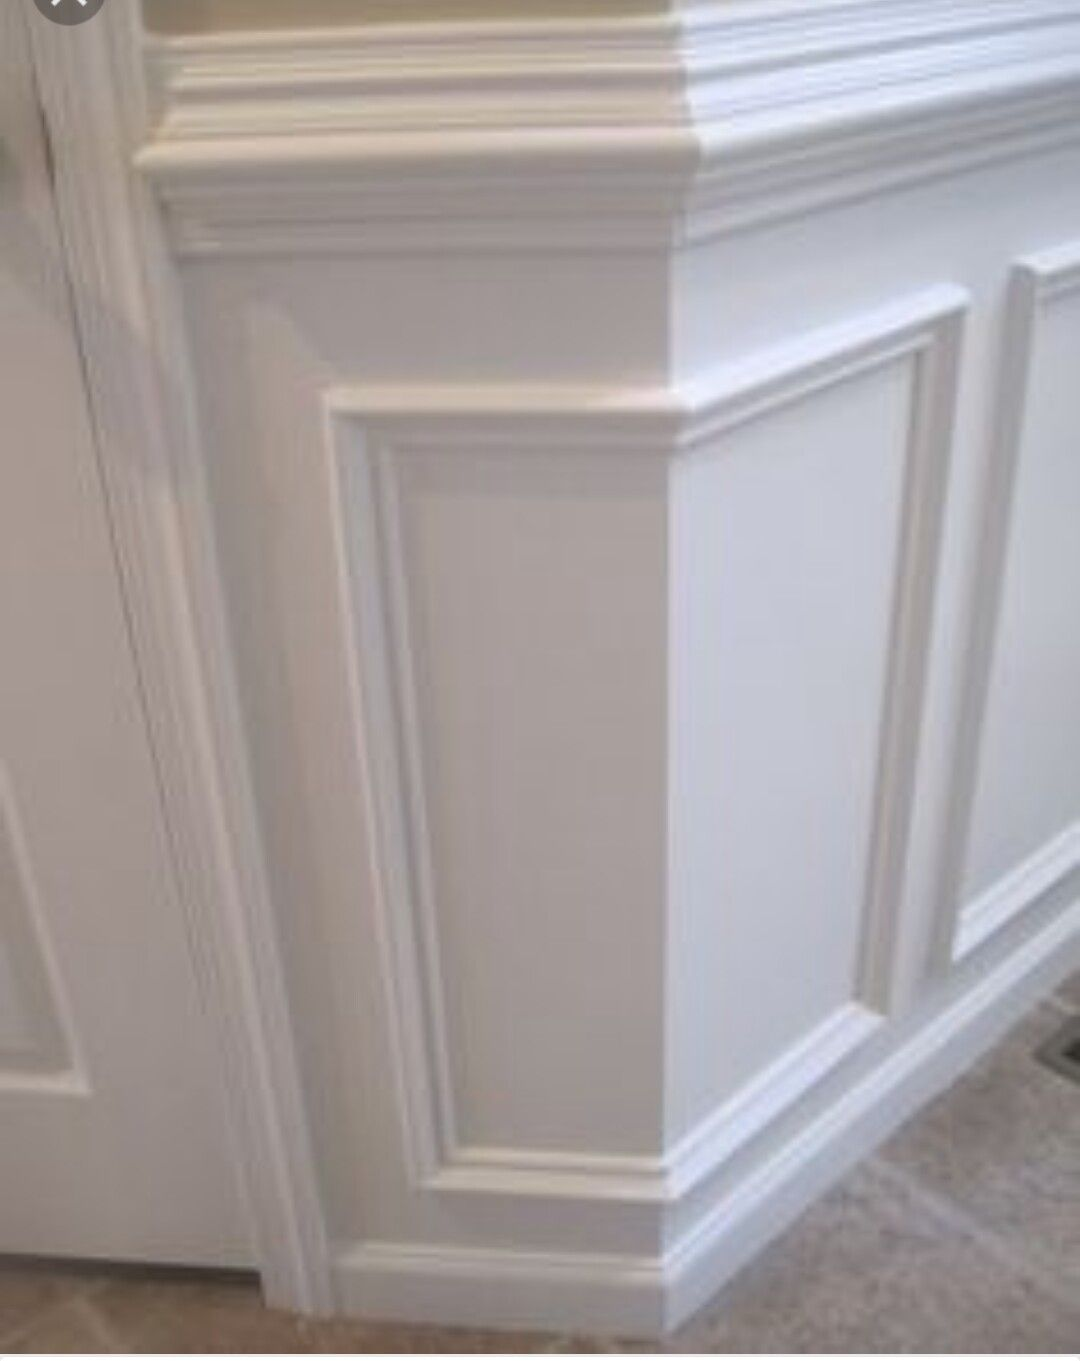 Di diy wainscoting dining room - Great Clean Look For Wainscoting